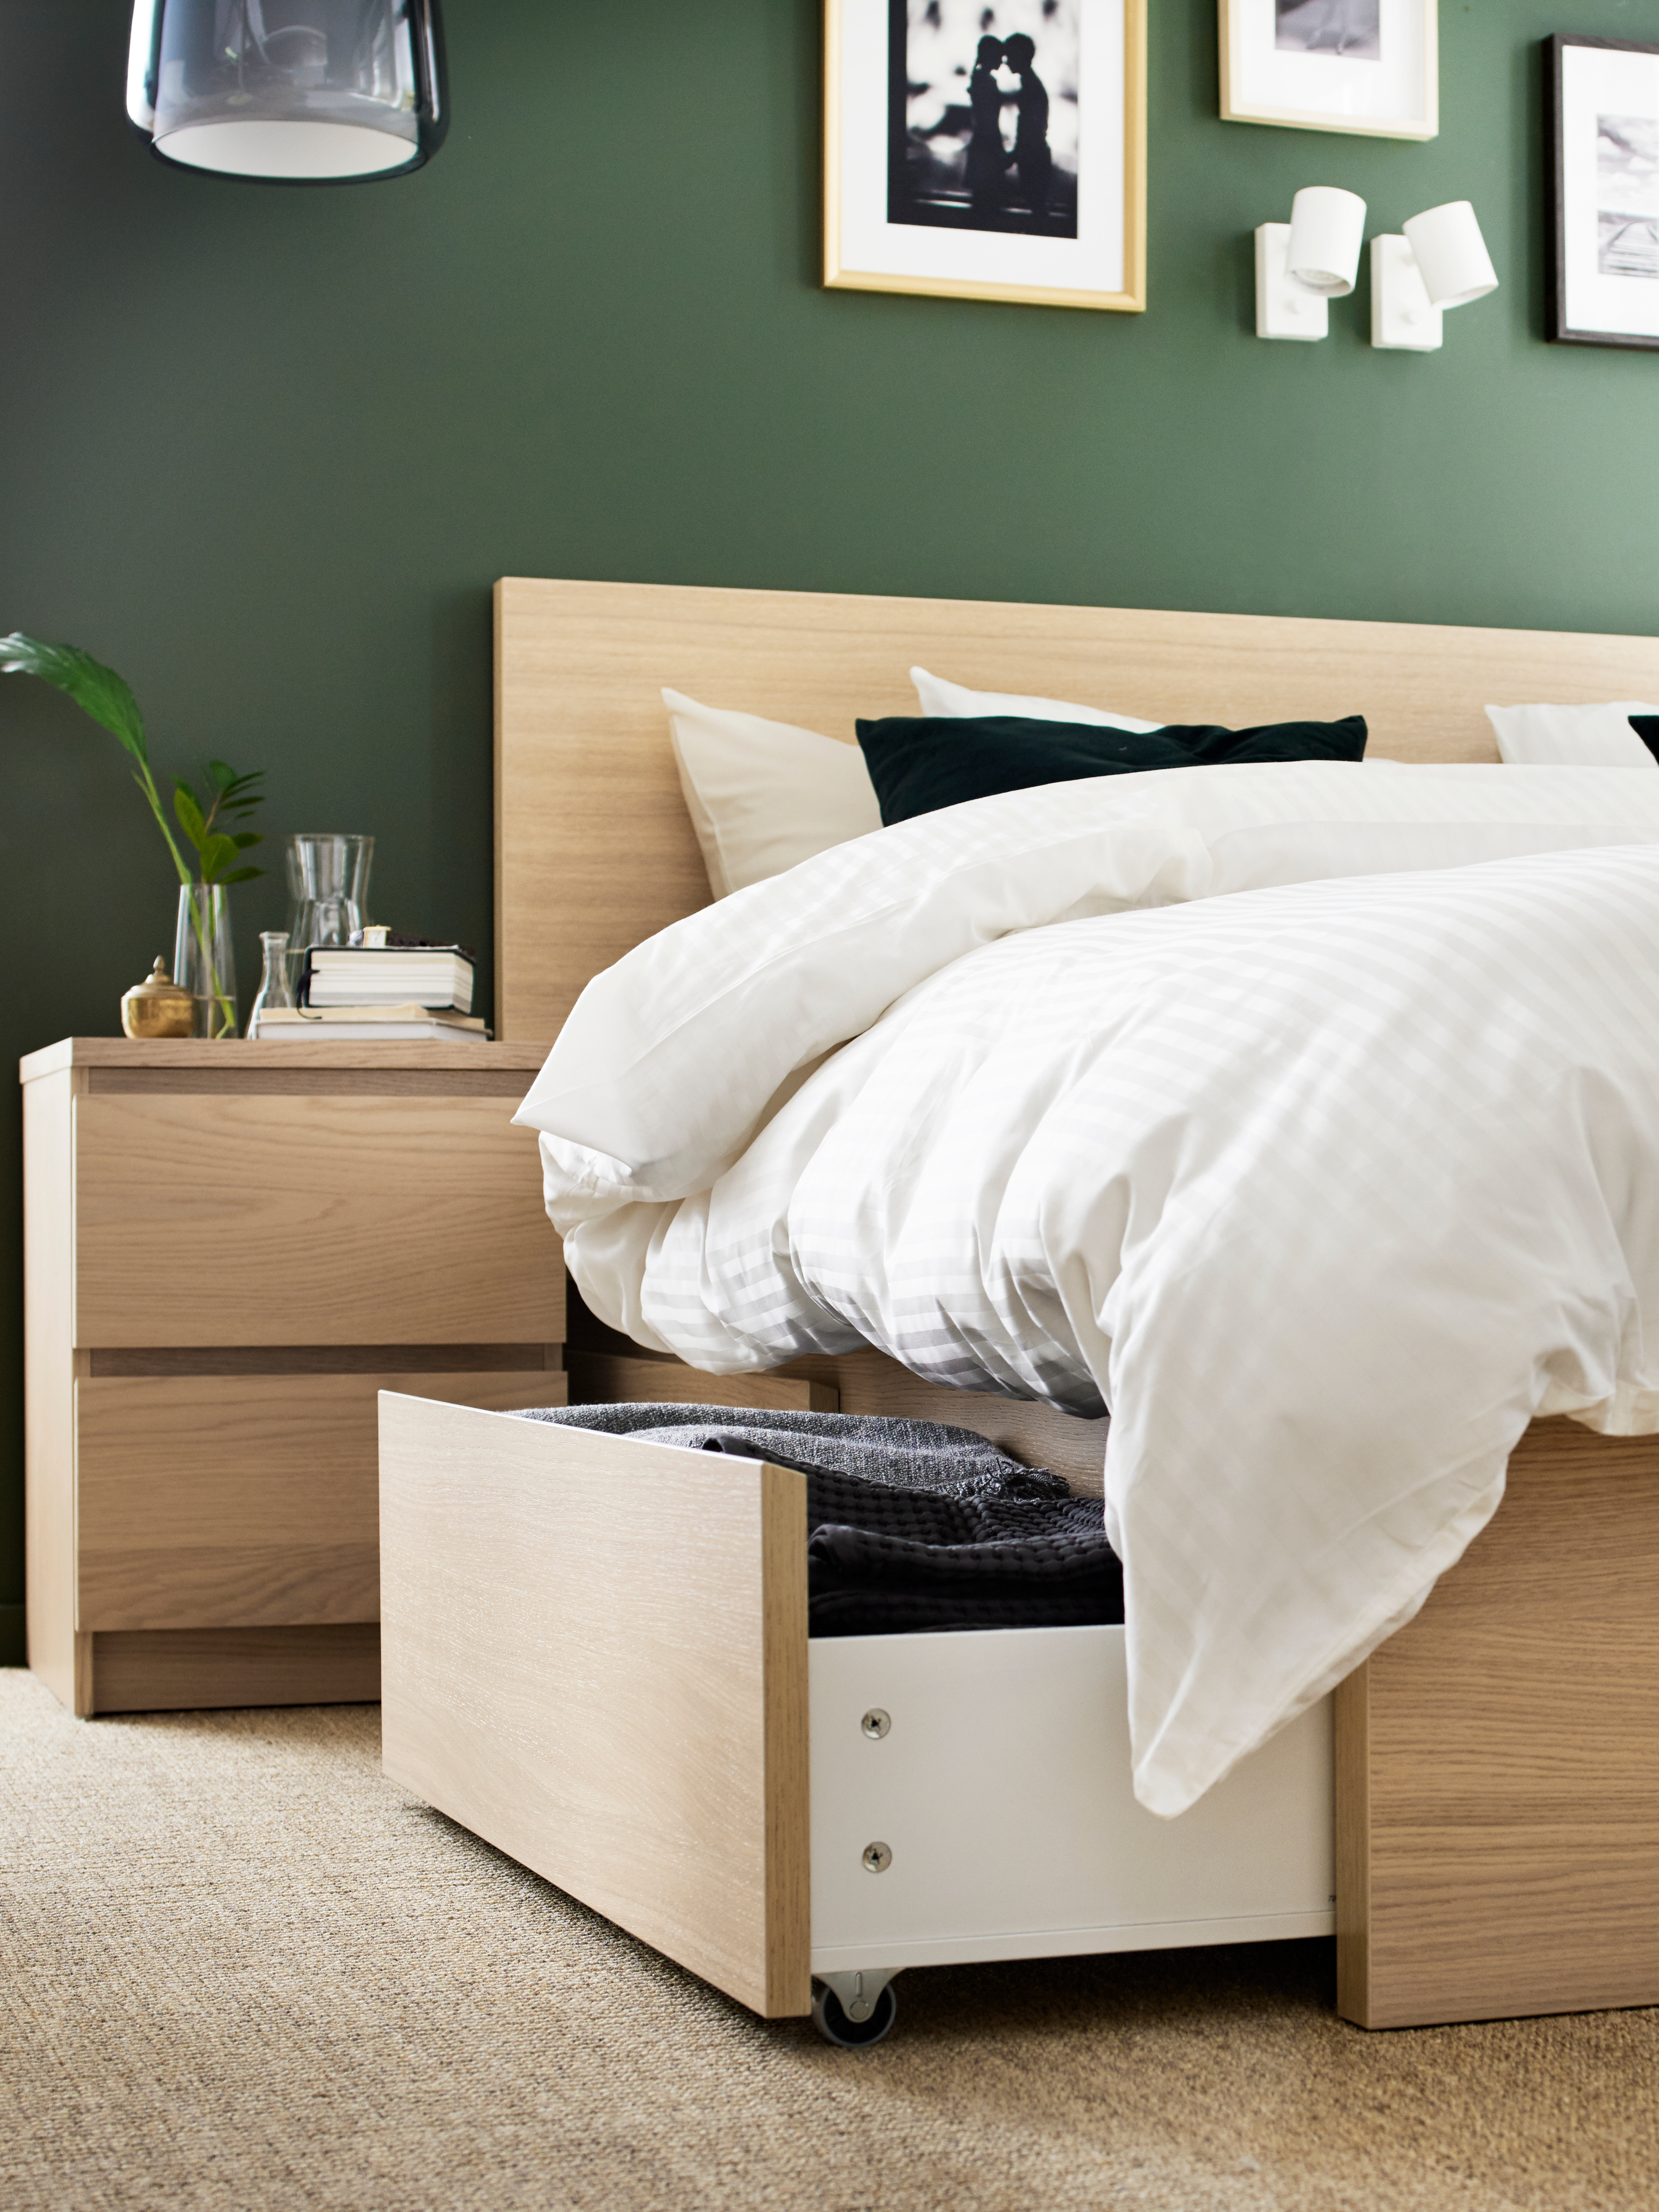 Convenient storage that lets you stay in bed - IKEA